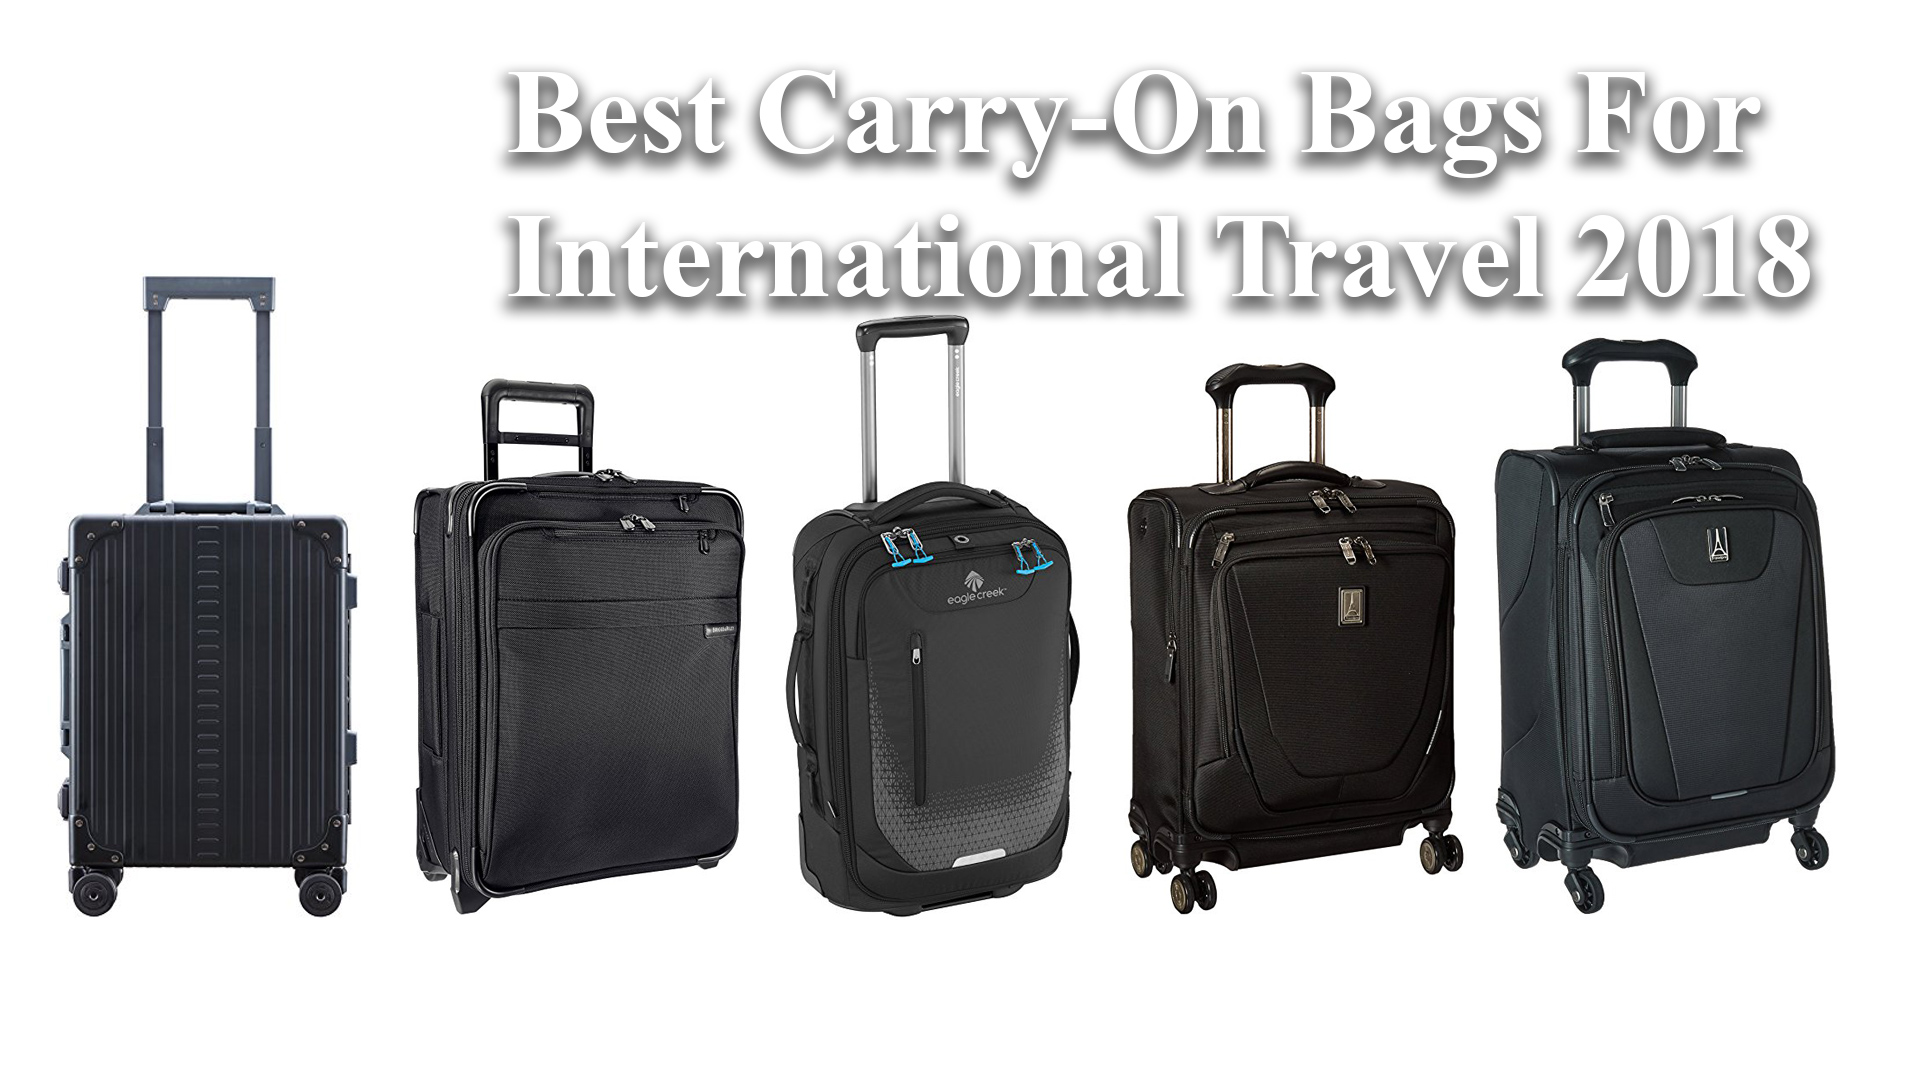 Best Carry-On Bags For International Travel 2018